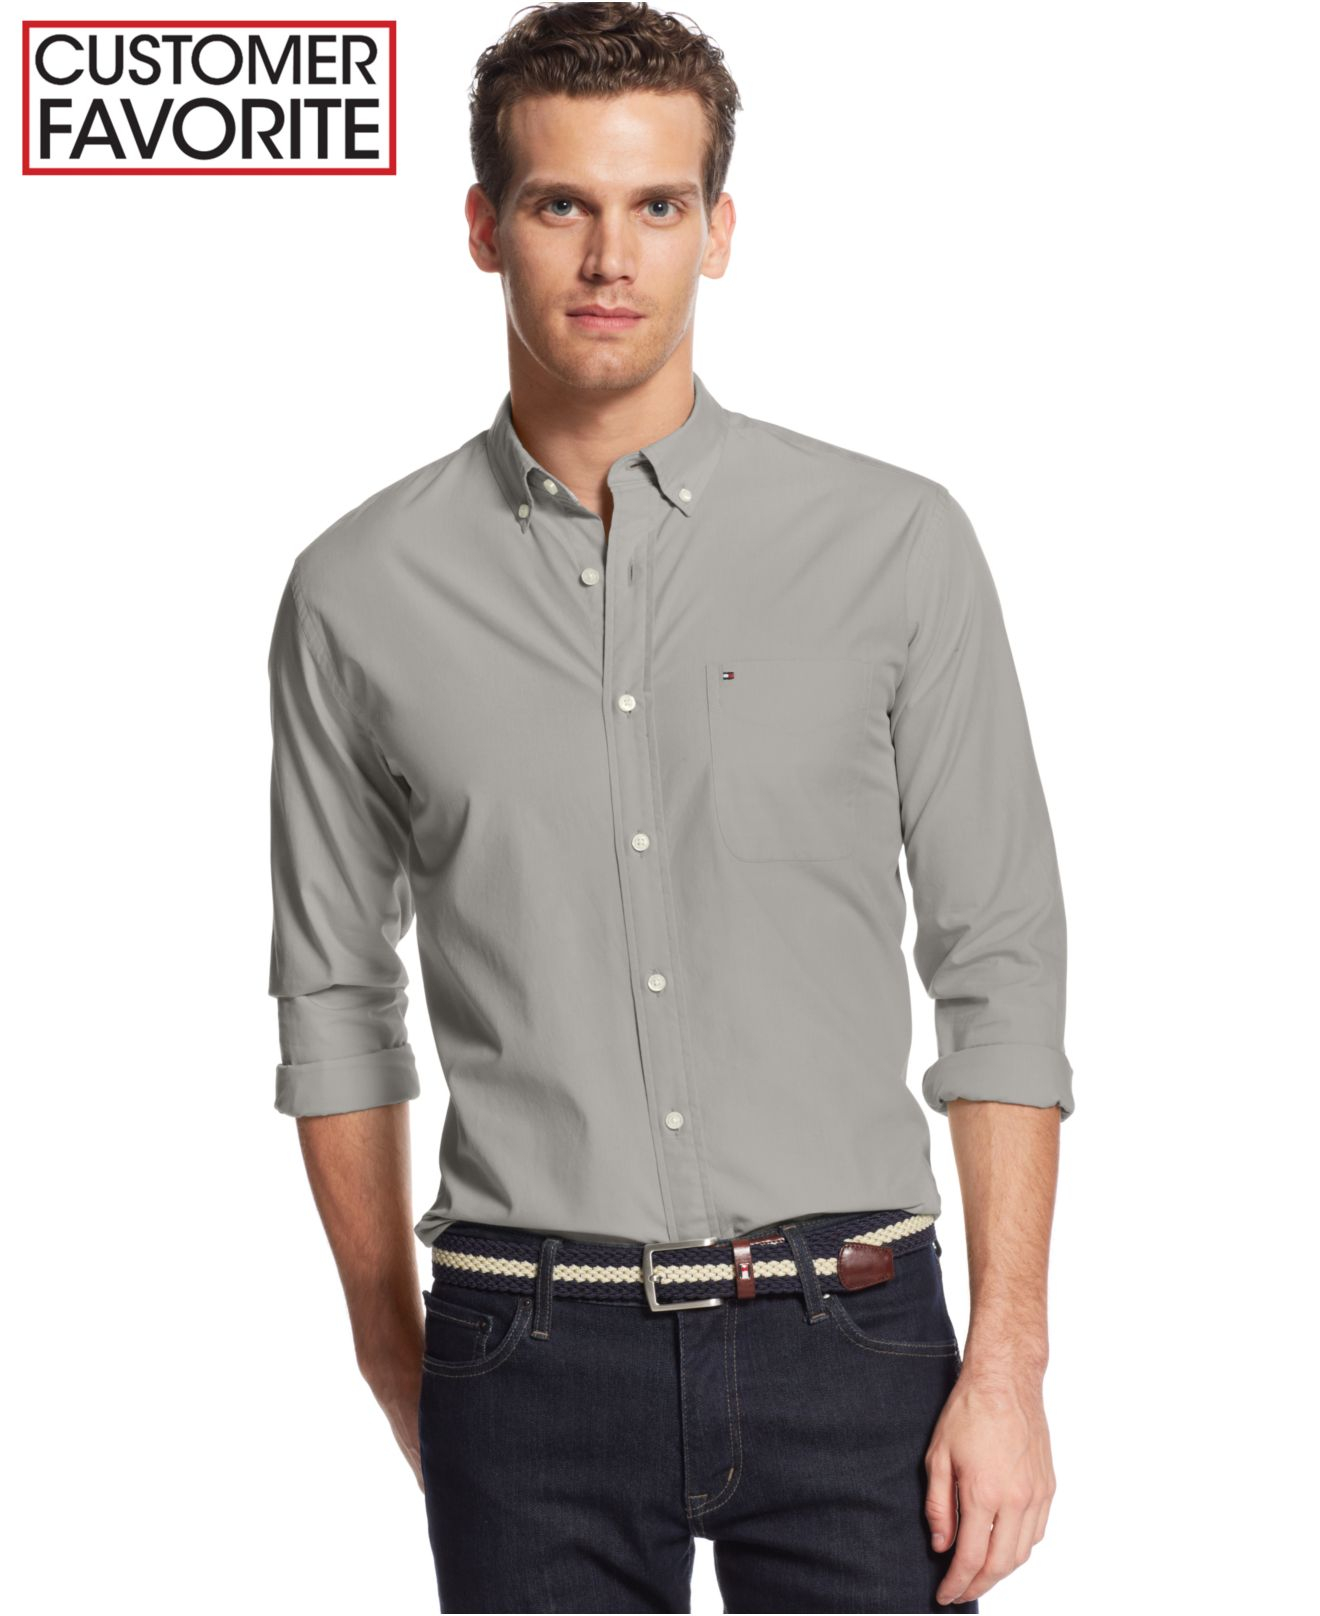 Tommy Hilfiger Wells Solid Classic Fit Shirt In Gray For